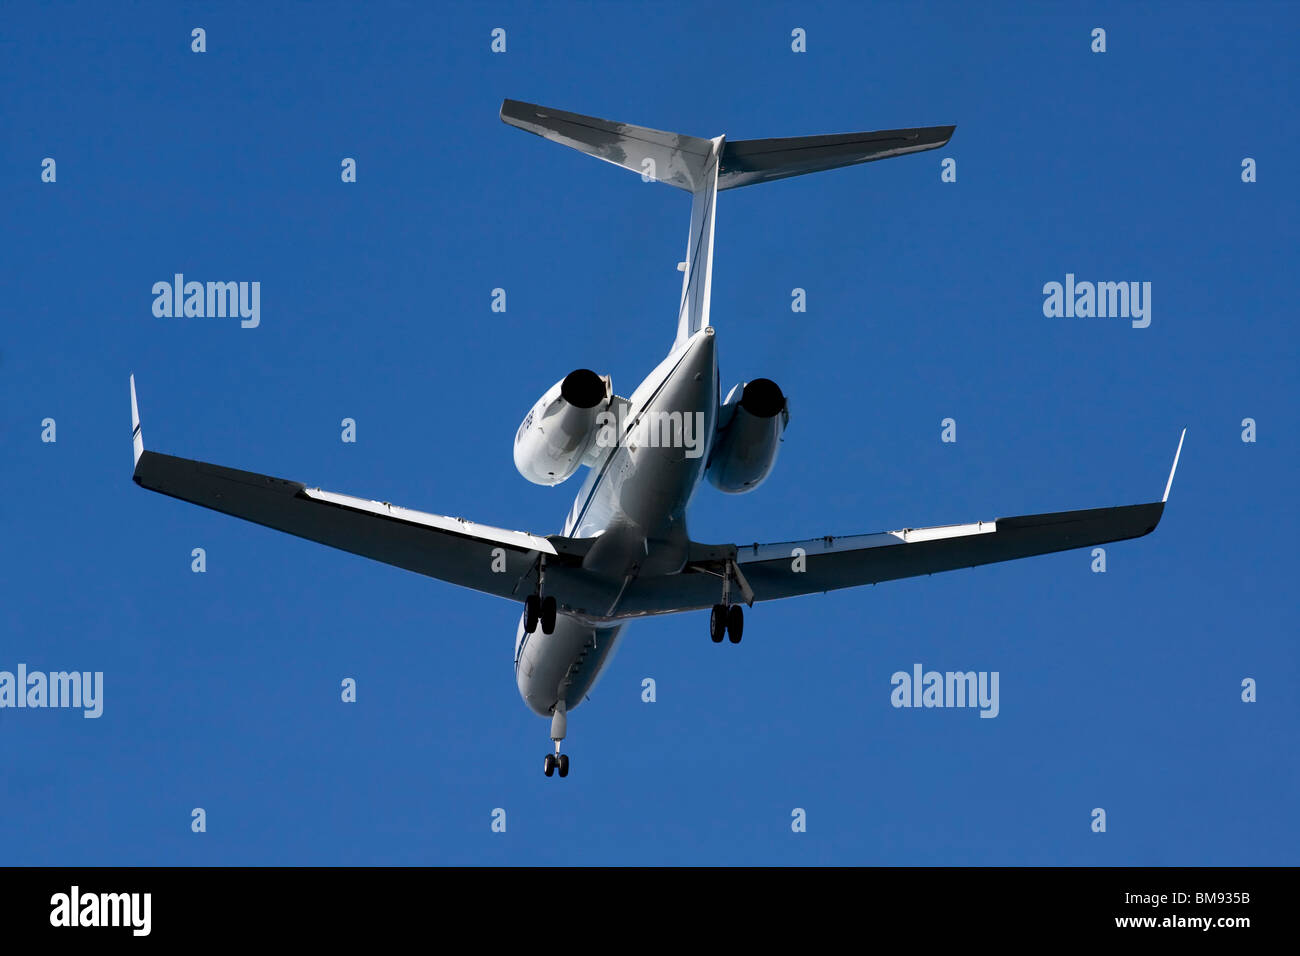 Gulfstream Aerospace G-IV with landing gear down. - Stock Image